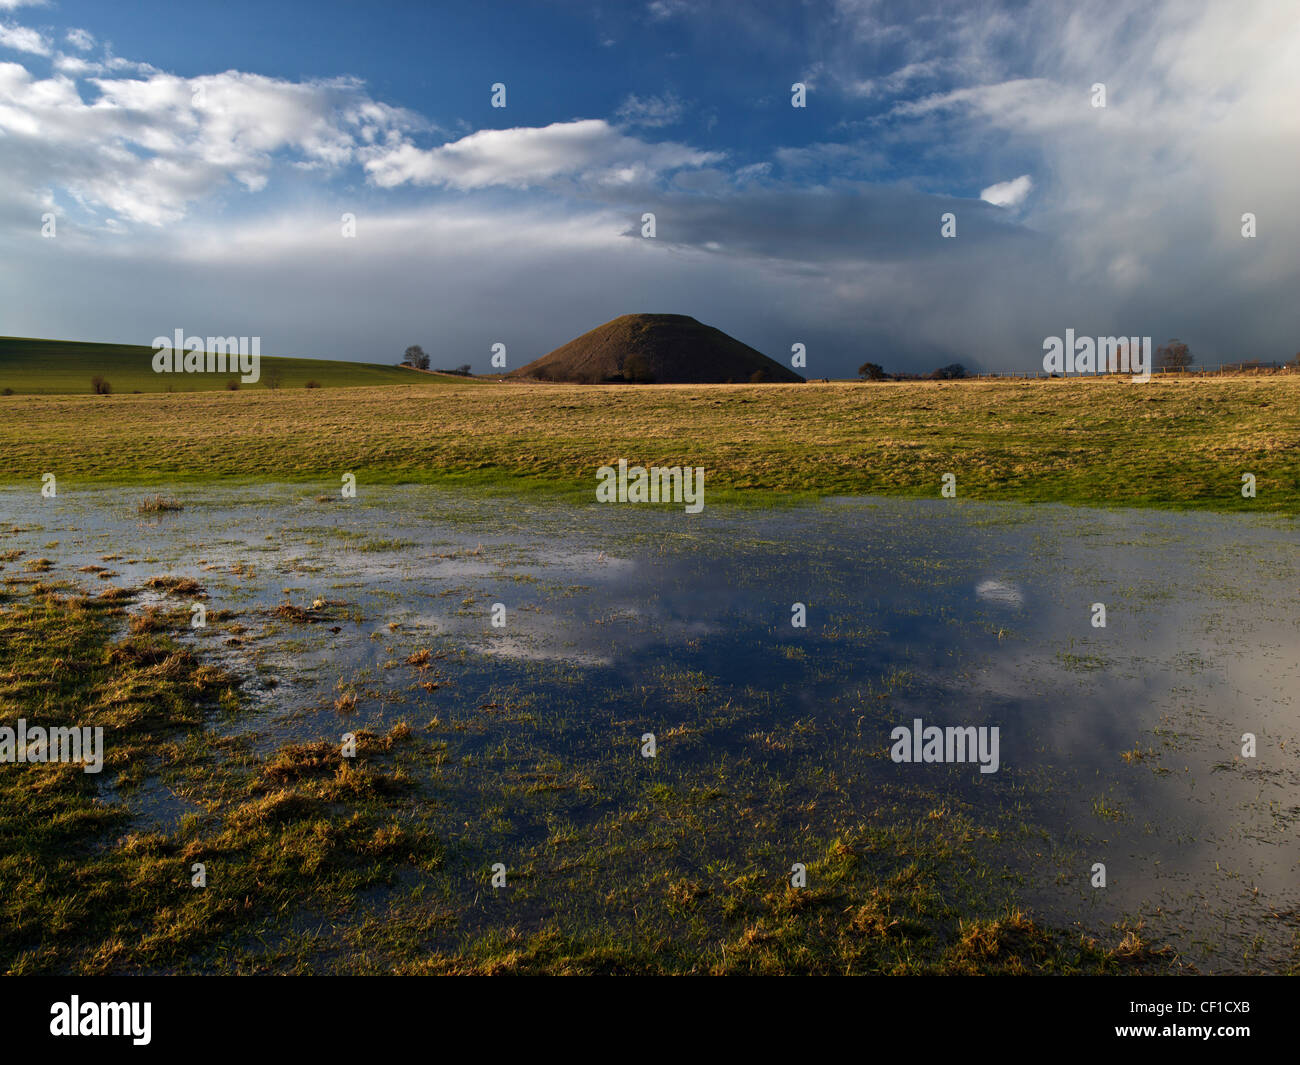 Silbury Hill, the tallest prehistoric human-made mound in Europe, viewed across a flooded field. - Stock Image